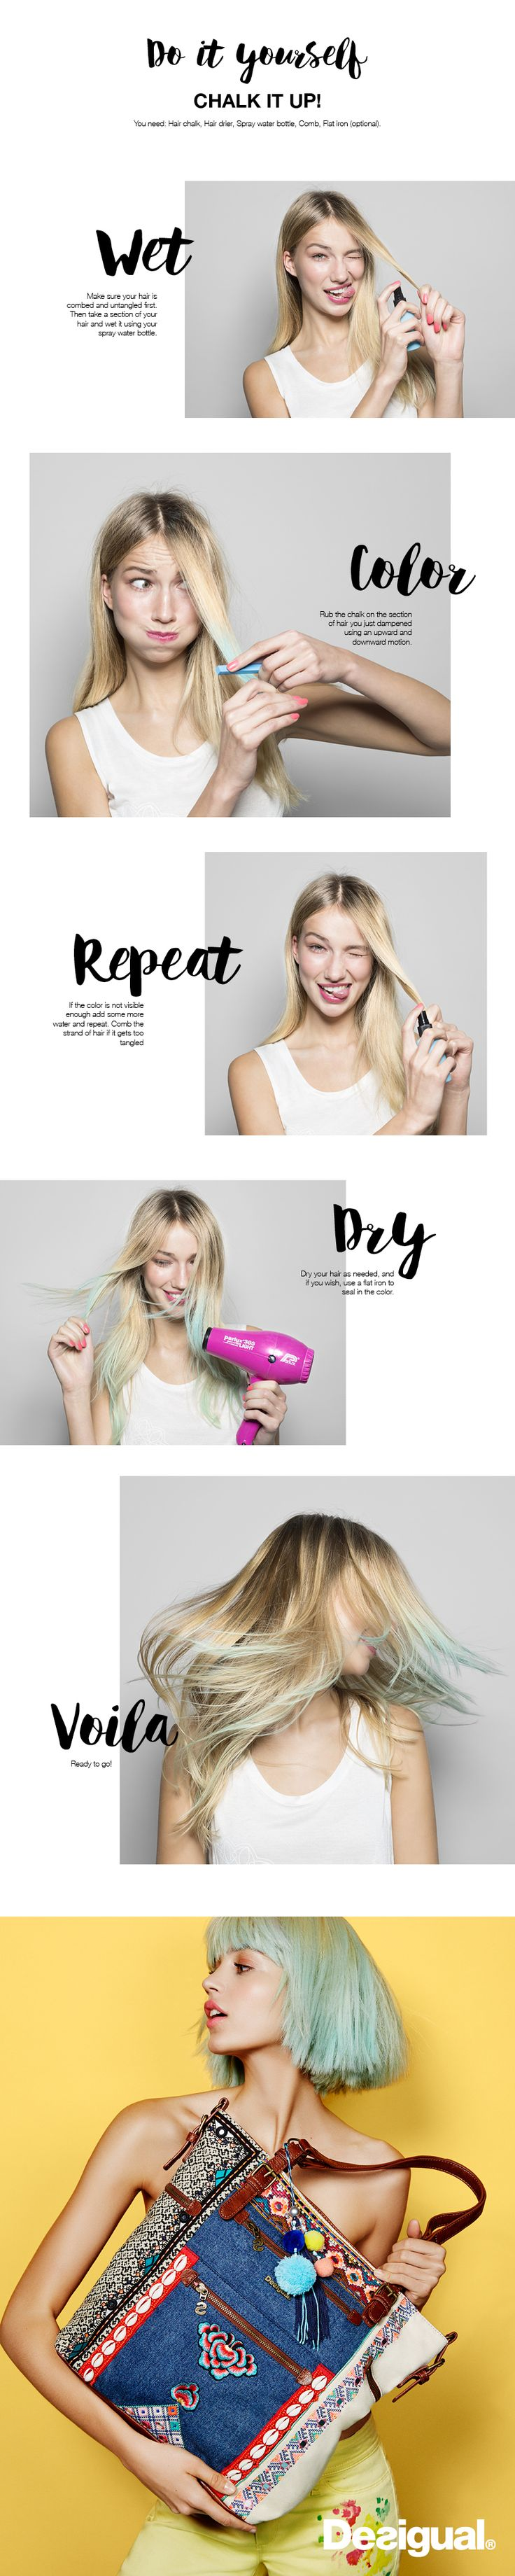 If you want to add some fun and funky colors to your hair without the permanence of a dye, then hair chalk is for you. We've seen it at fashion week and festivals and on some of our favorite celebs. One of the best parts about the chalked hair look is that you can change it easily and have almost an unlimited choice of colors. Instead of simply wearing your hair down try braiding different ways, curls, waves, buns and twists that can really make your colored strands stand out.